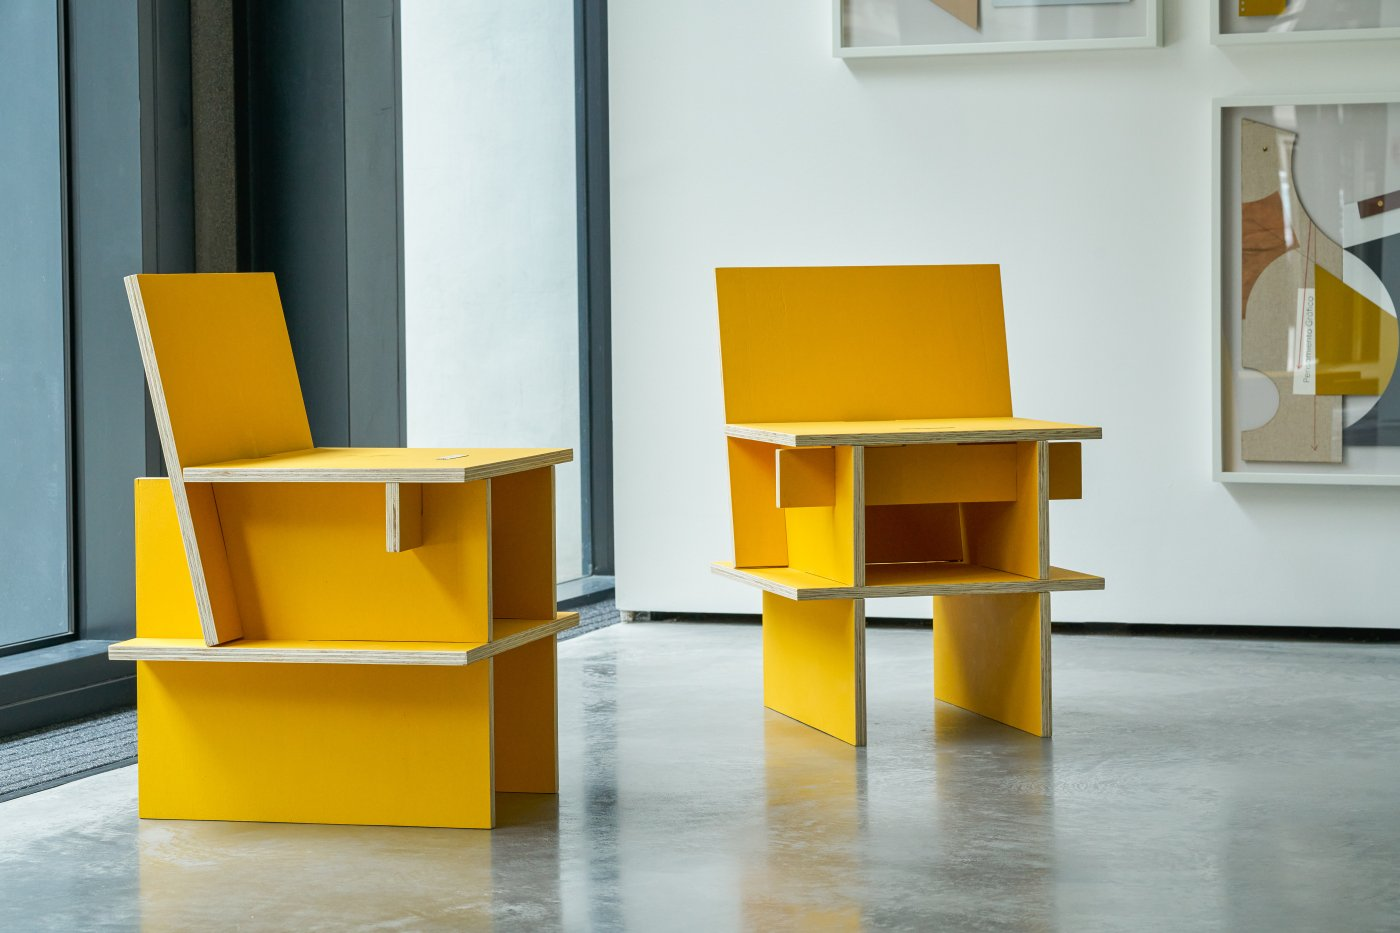 Sillas Núcleo (two chairs)